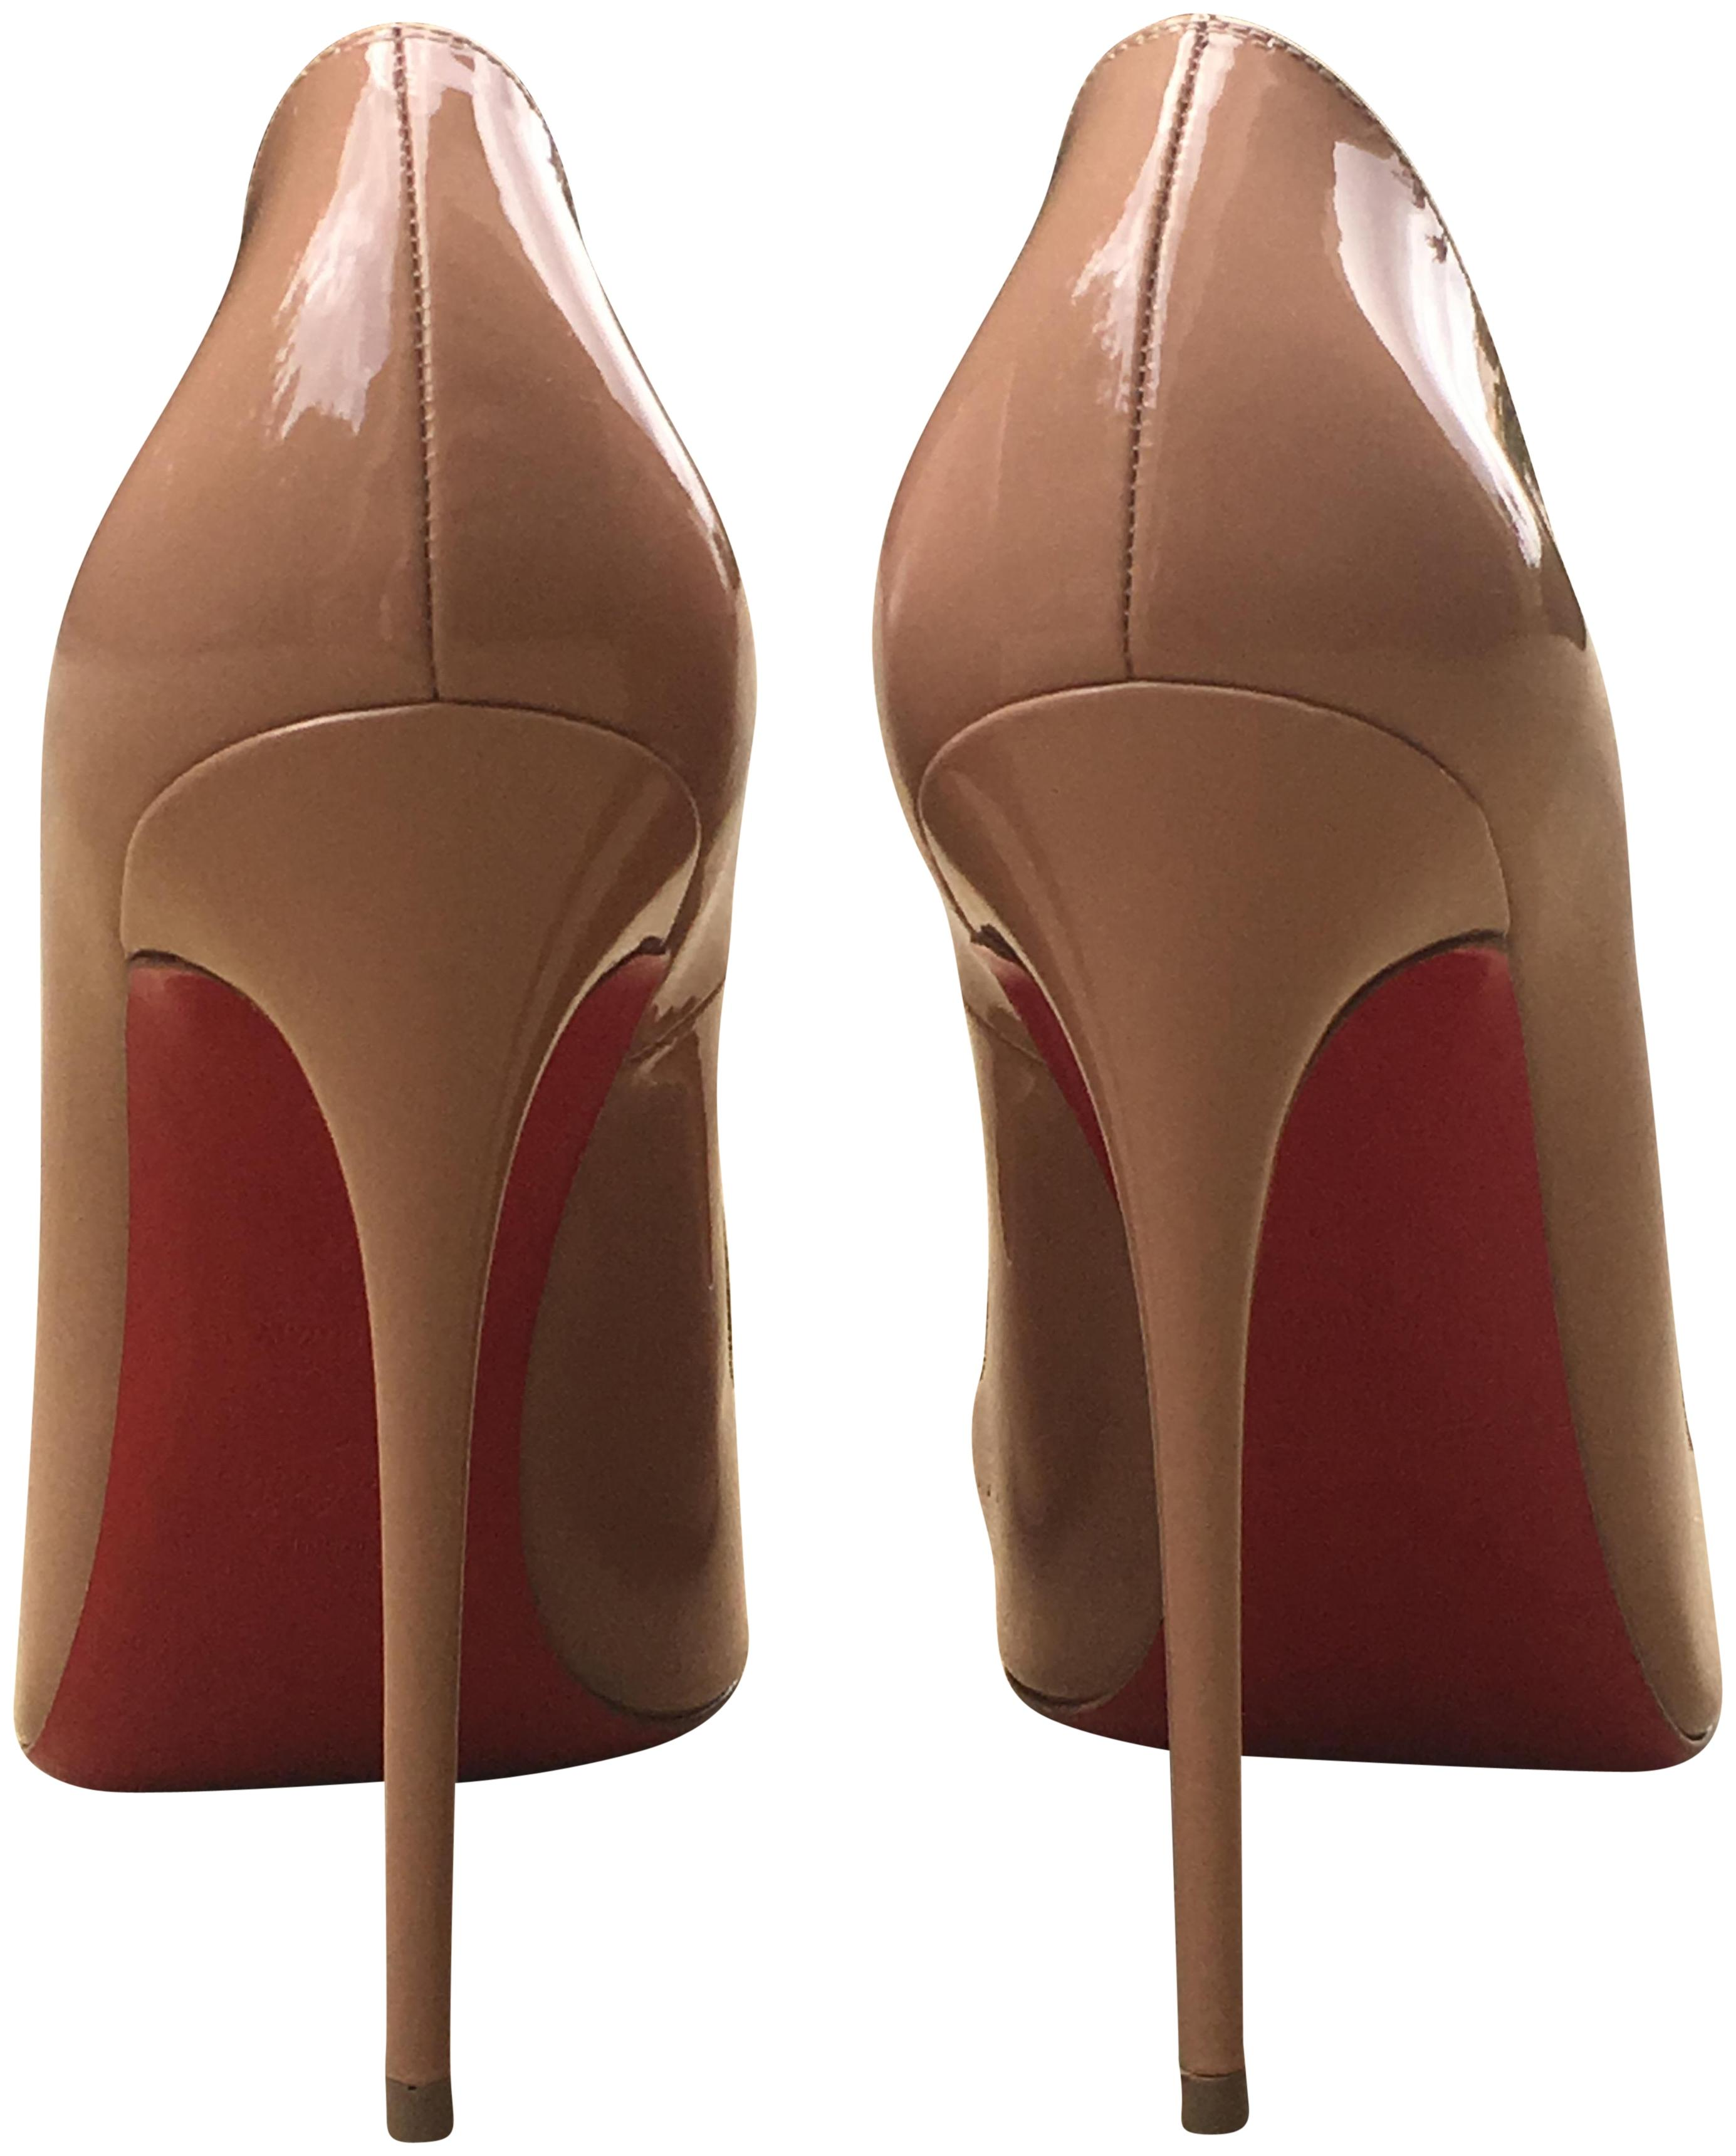 47b13c646933 Christian Louboutin Nude Black Patent Leather So So So Kate Pumps Size EU  41.5 (Approx